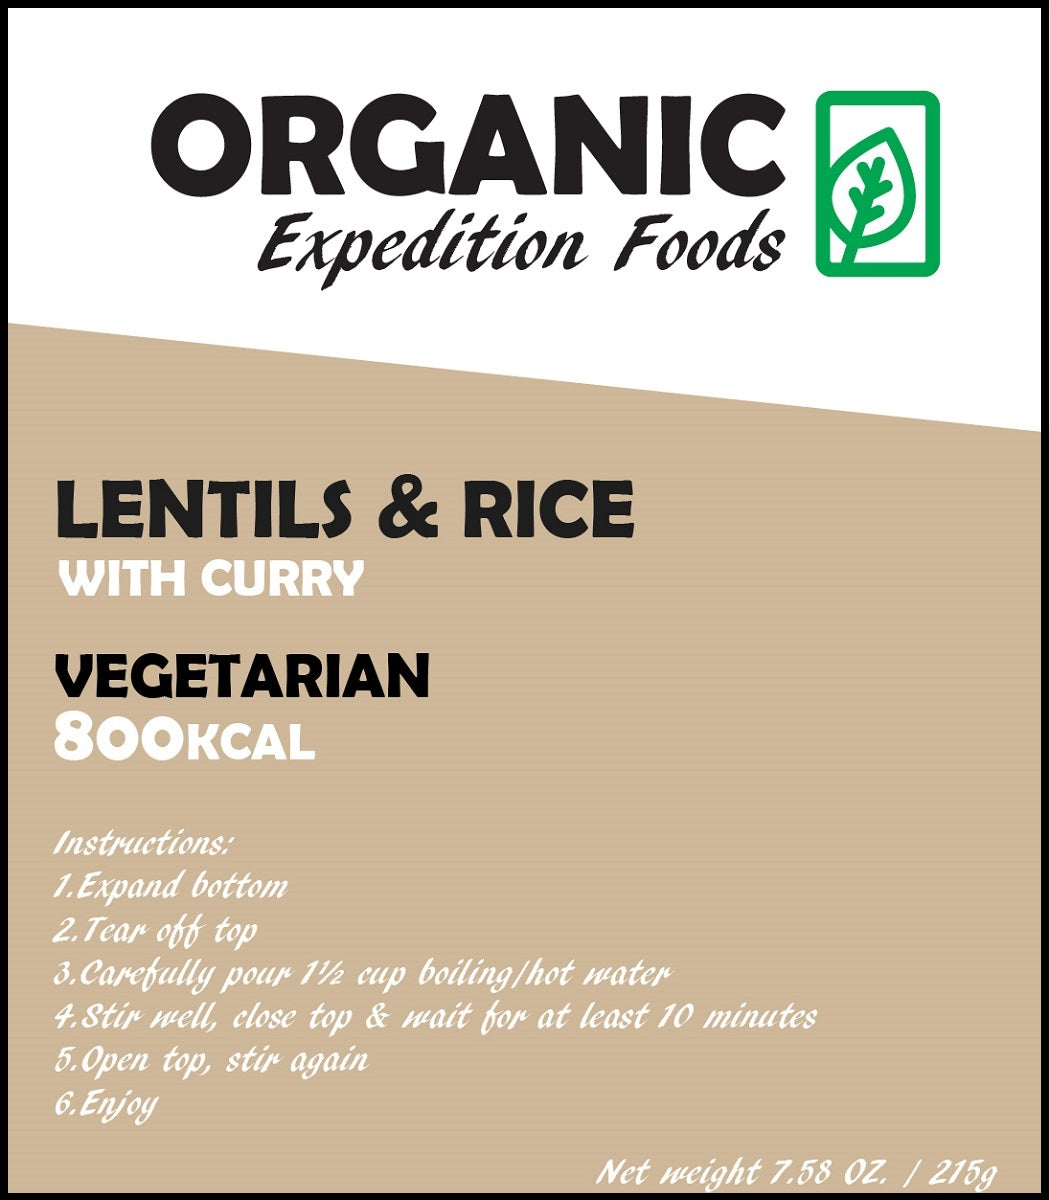 LENTILS & RICE with Curry - 400 or 800kCal